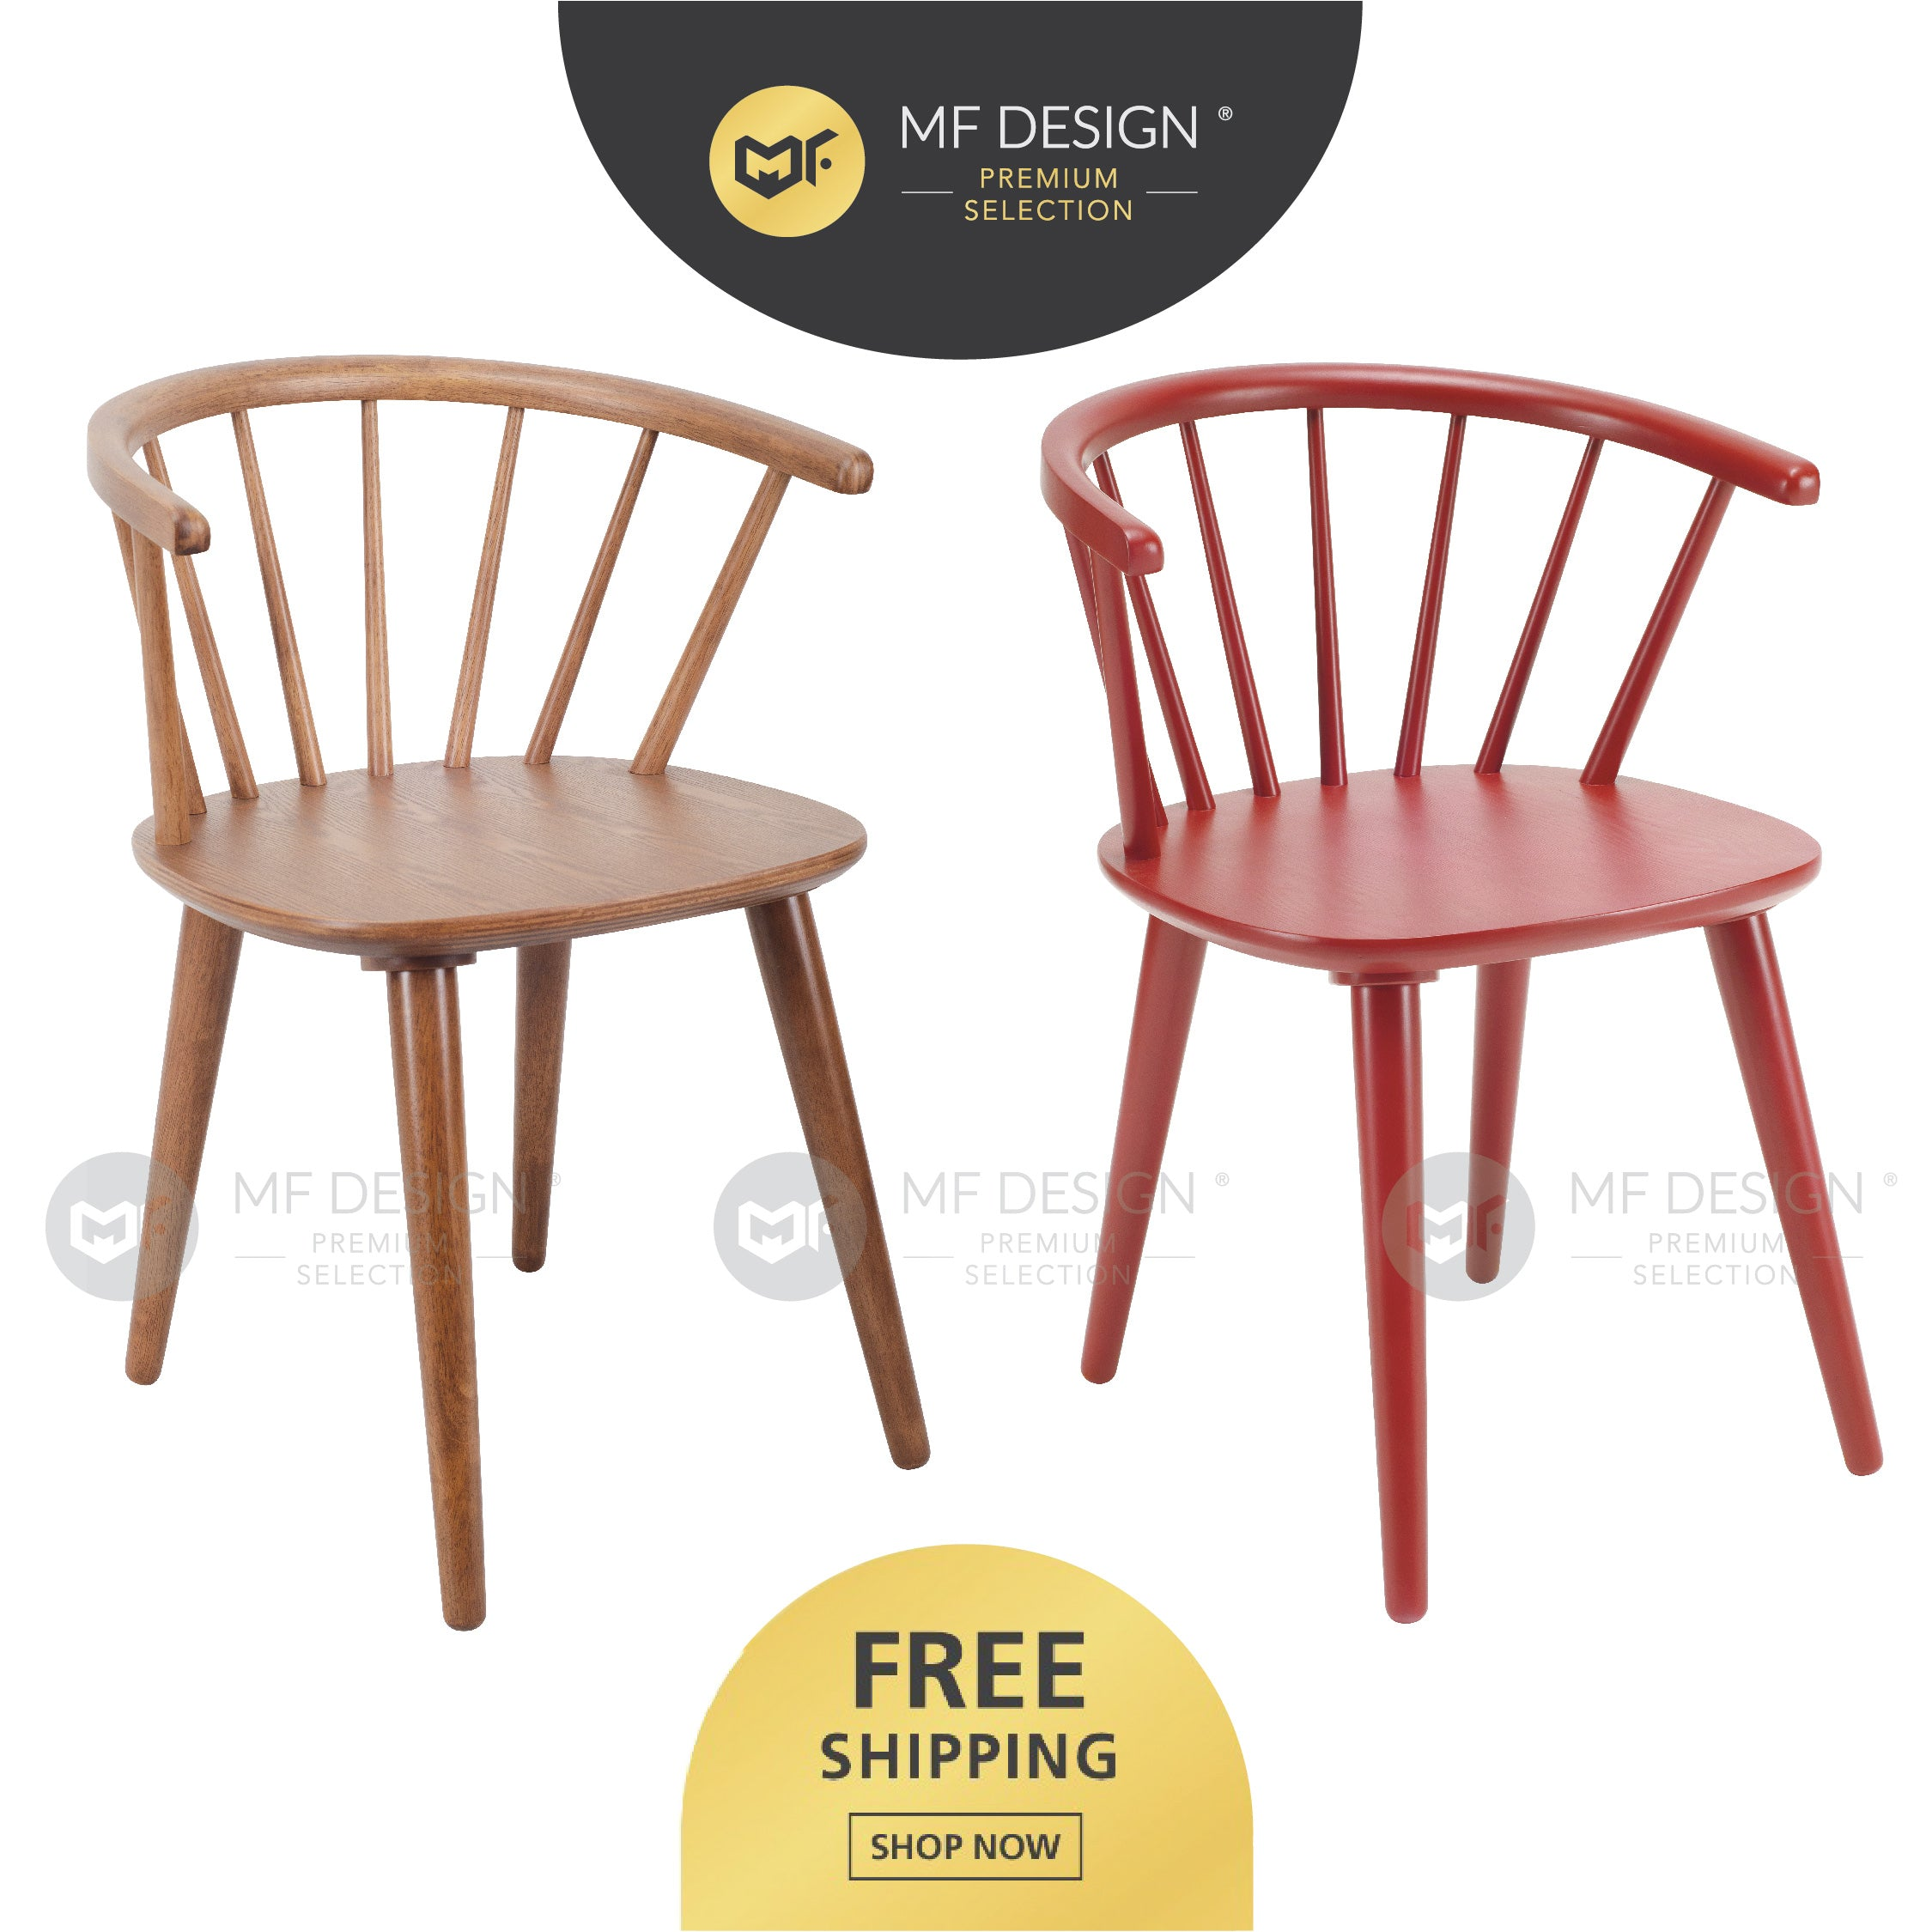 MFD Premium Catherine Dining Chair / kerusi / chair